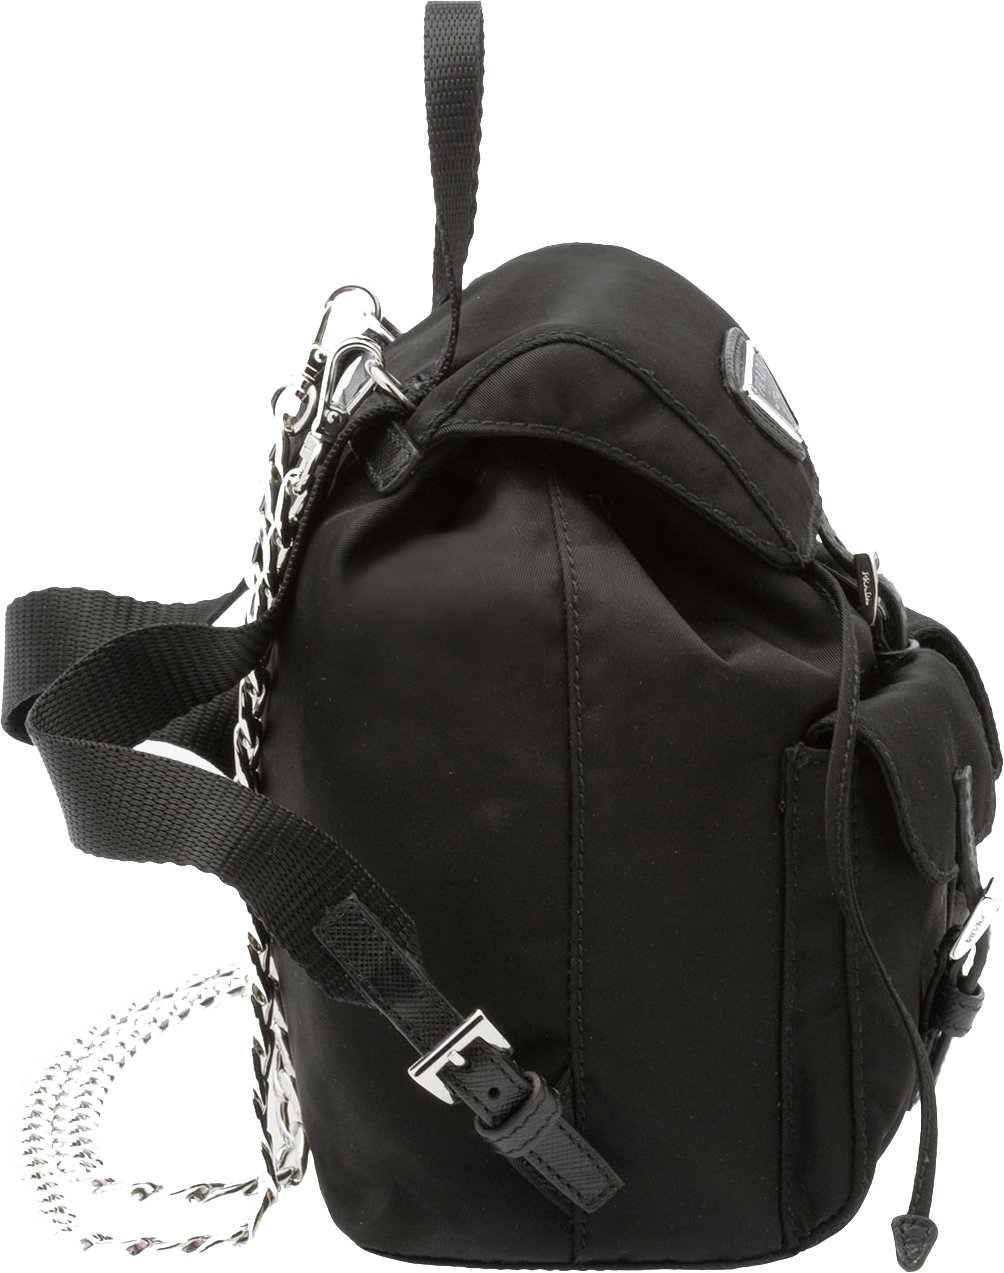 Prada-Vela-Mini-Backpack-3